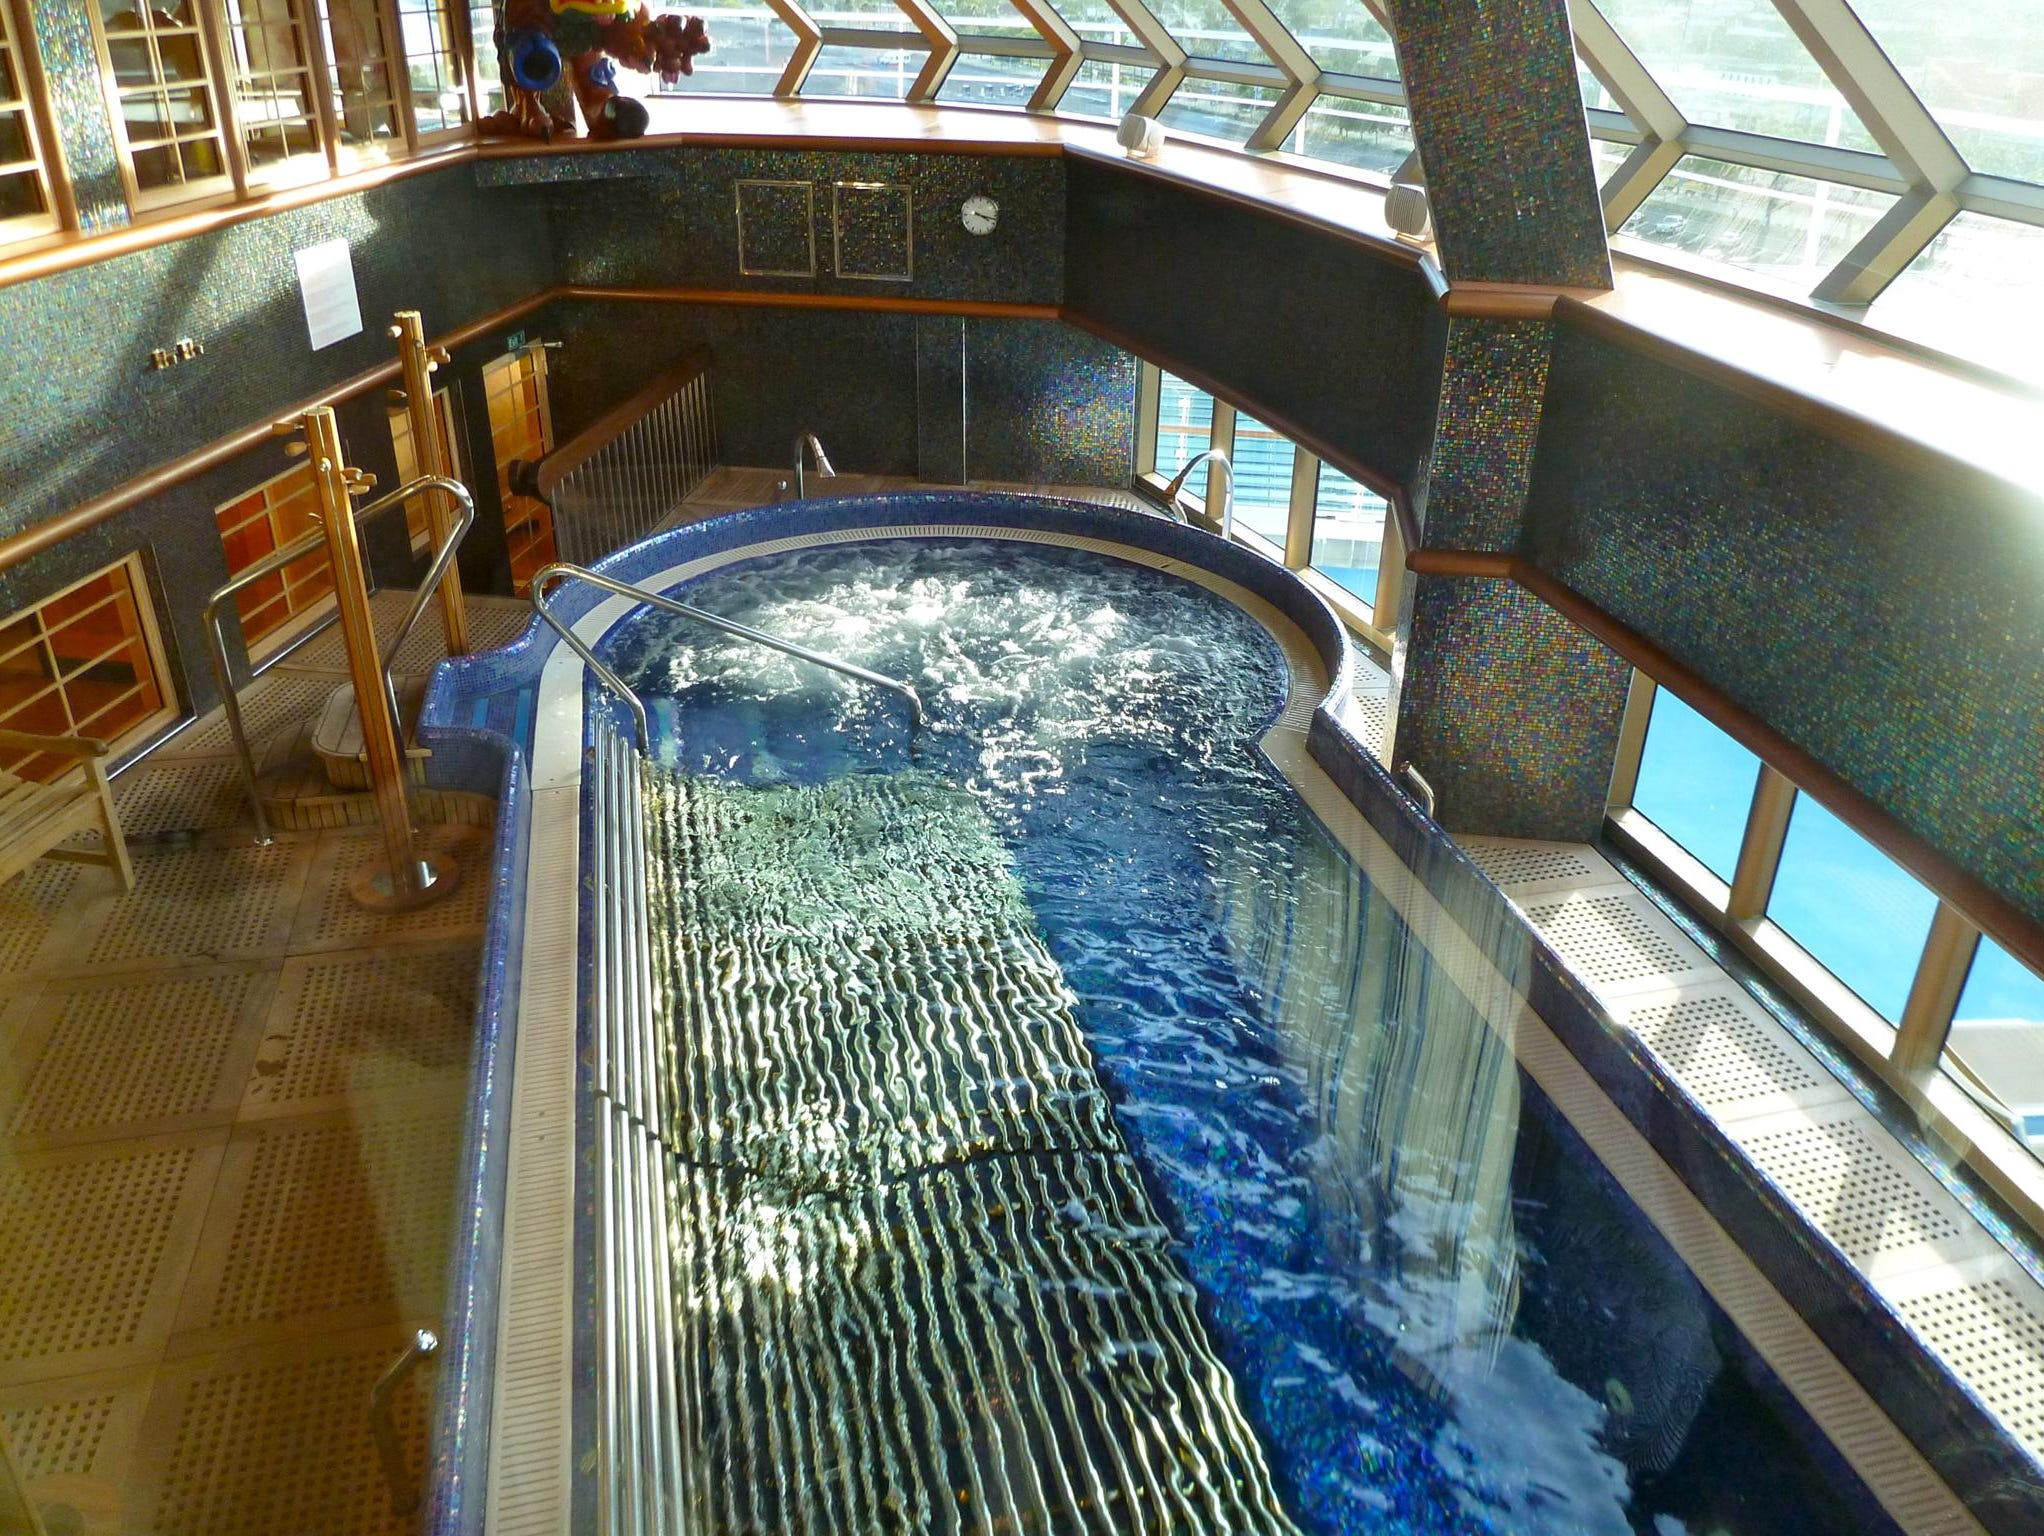 On the starboard side, there is a gymnasium overlooking the bow that also has a port-facing view over the Thalassotherapy pool.